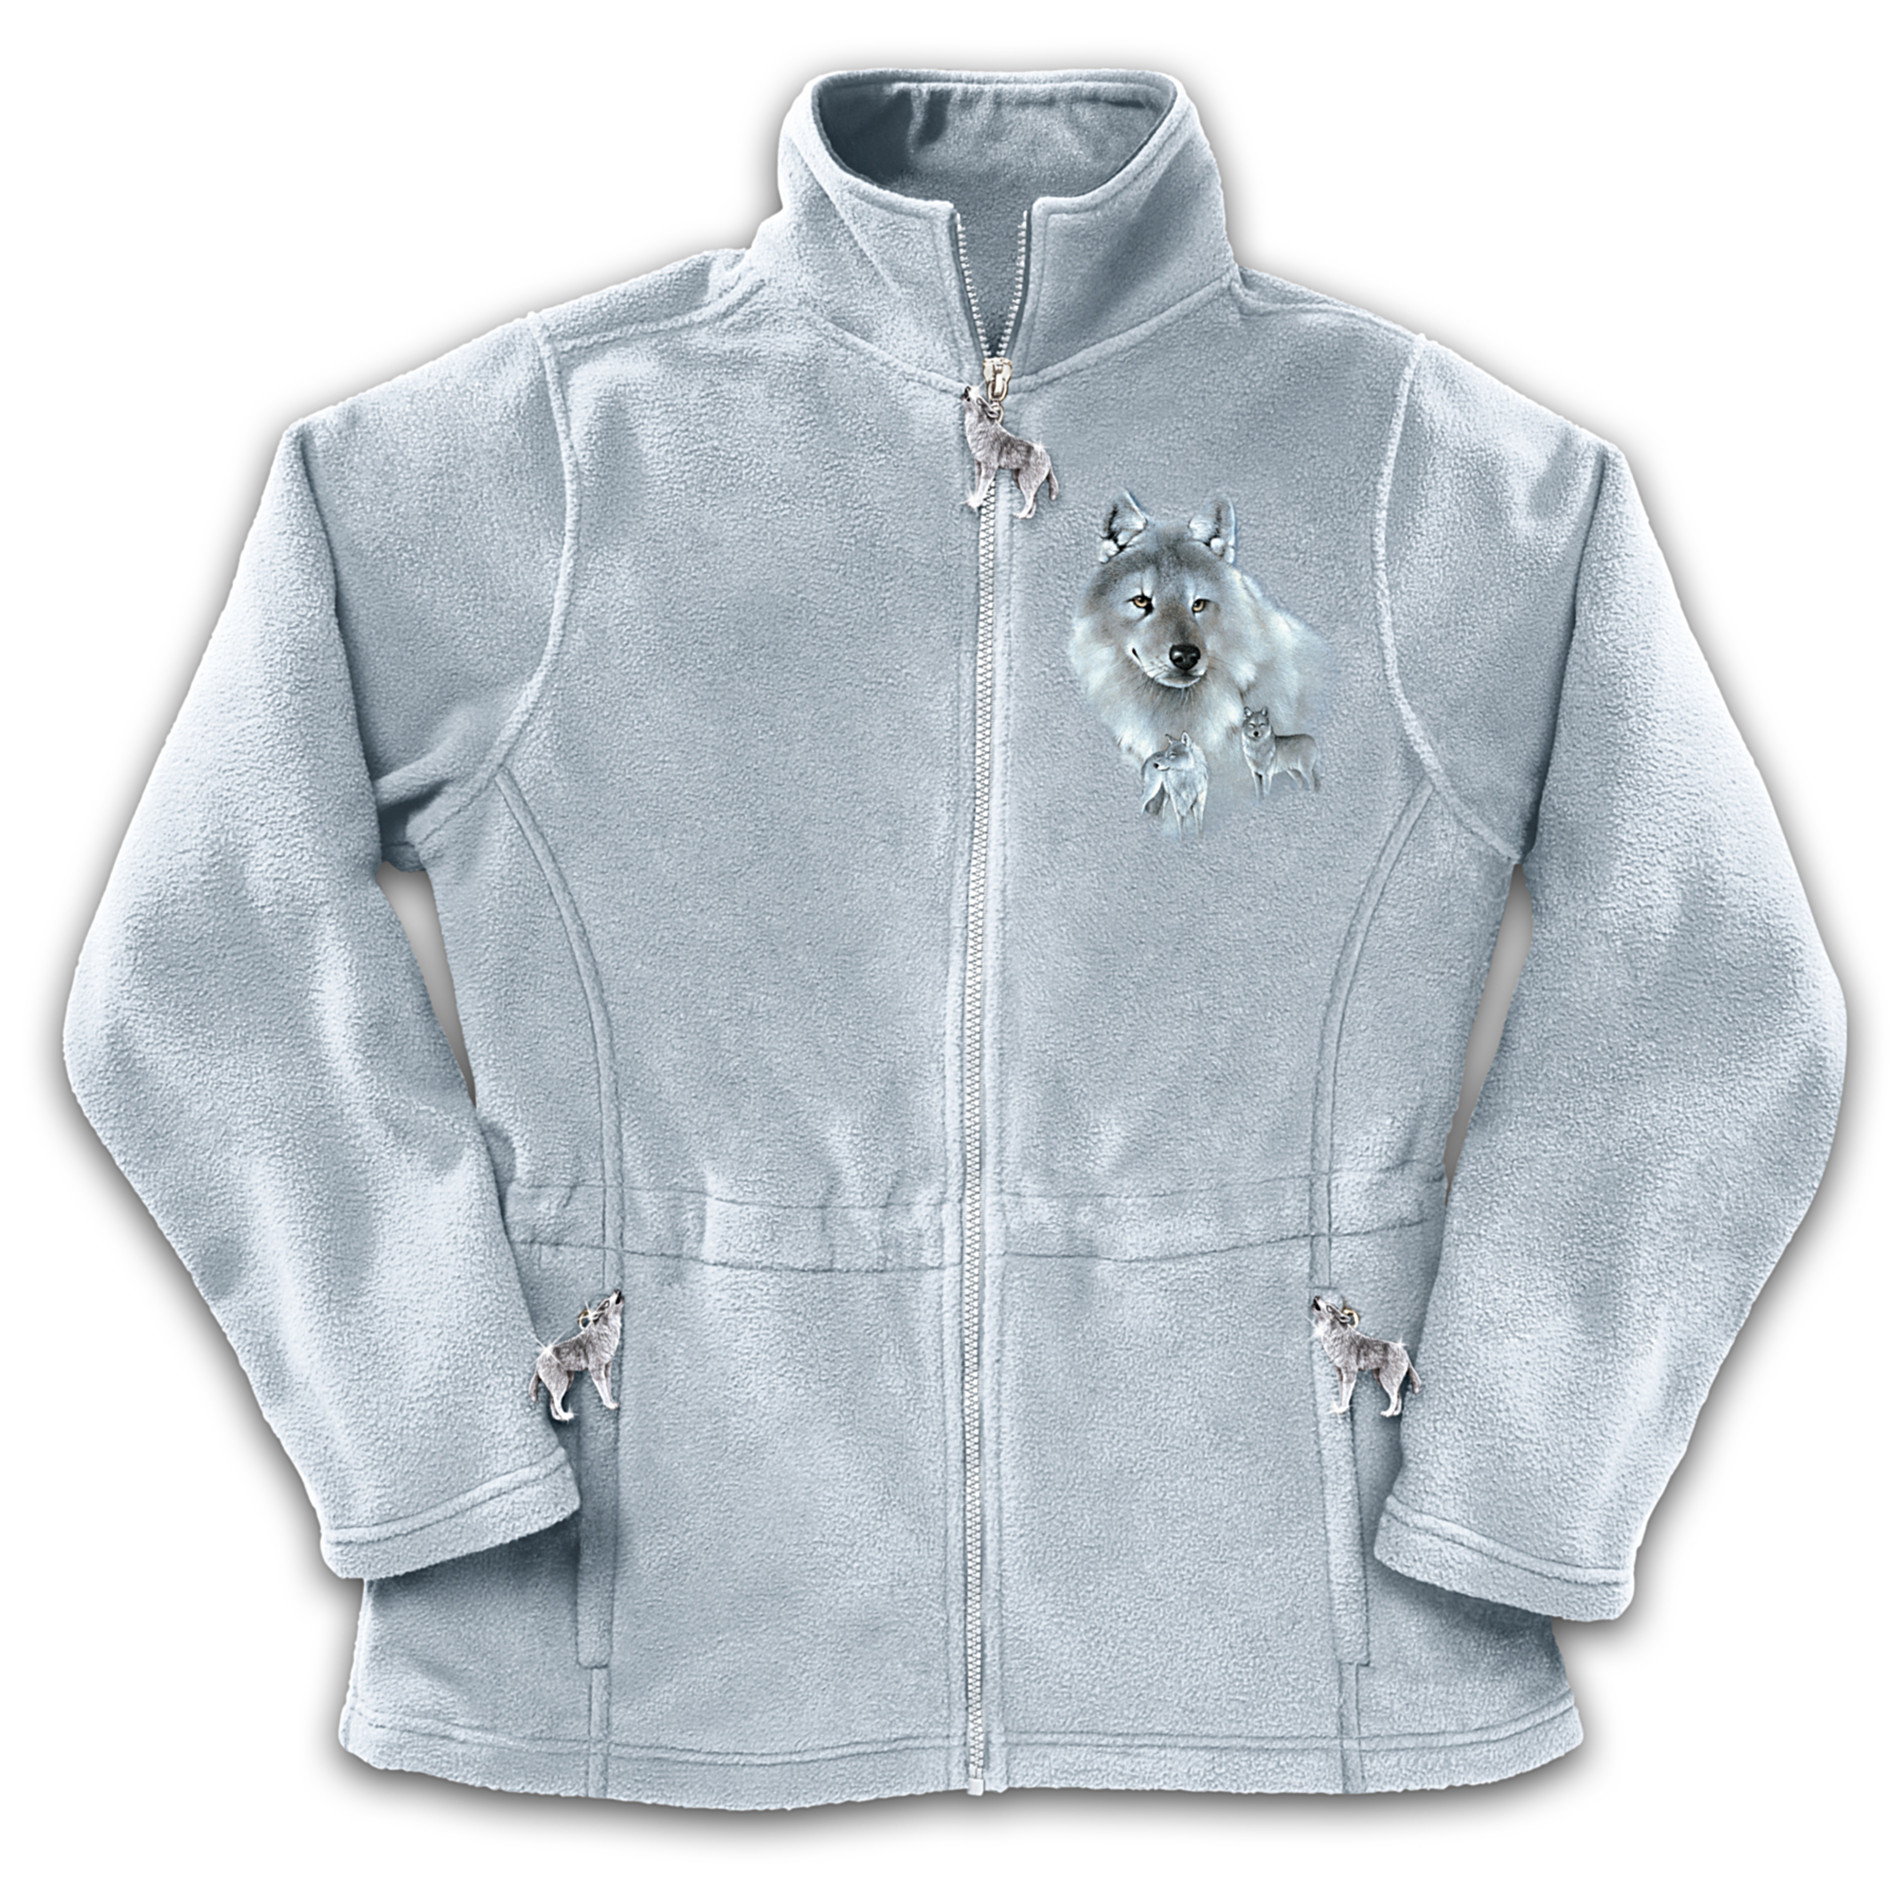 The Bradford Exchange Women's Fleece Jacket With Wolf Art: Spirit Of The Wilderness at Sears.com